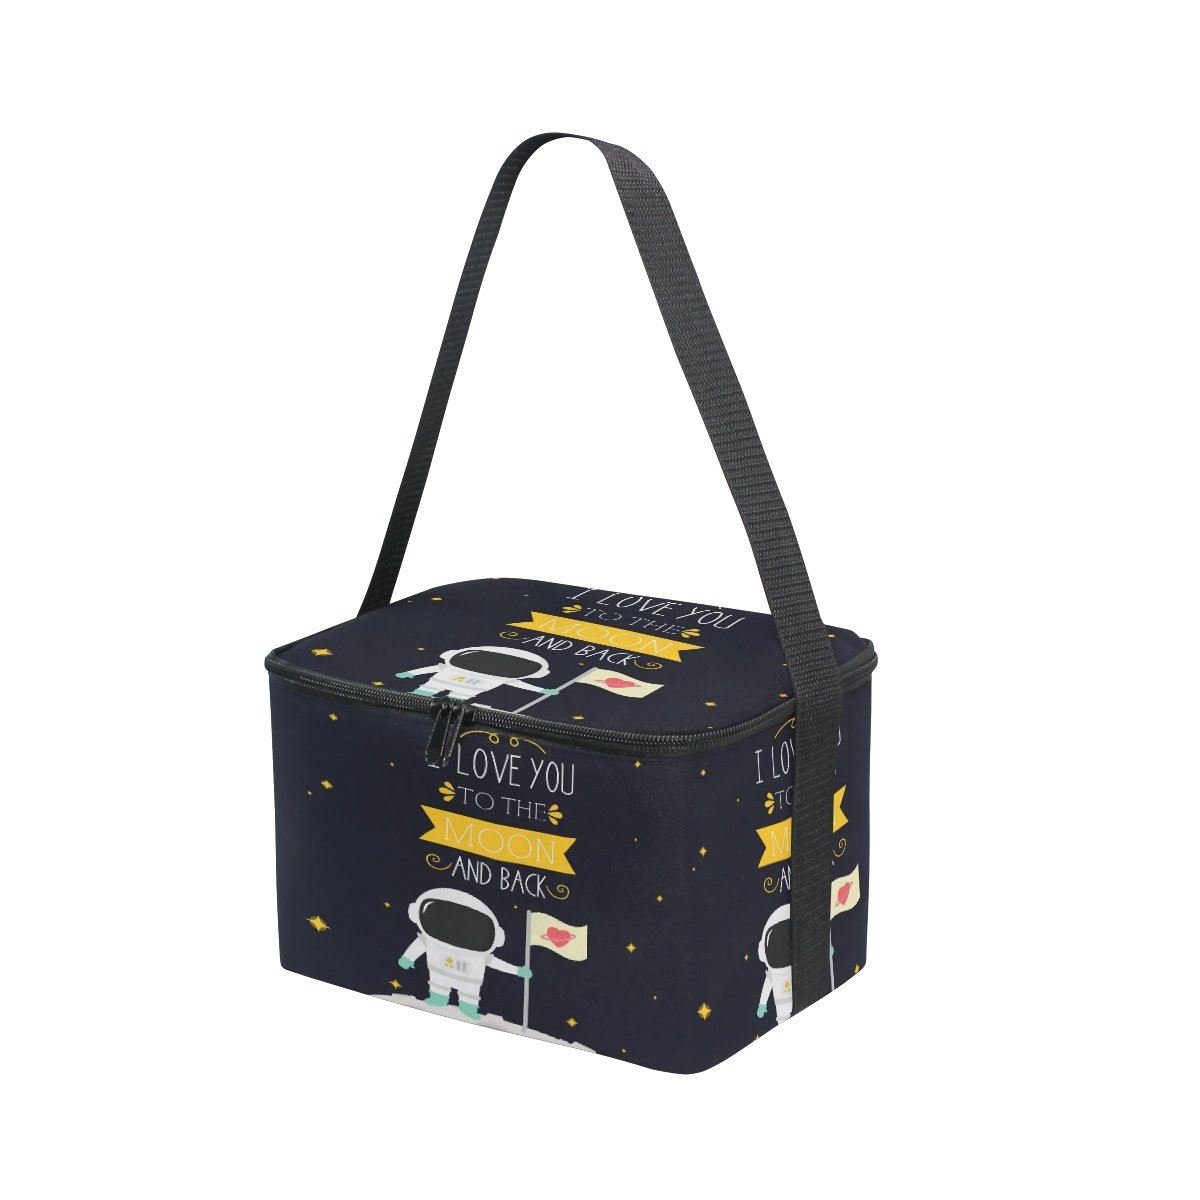 ALAZA I Love You to the Moon and Back Star Insulated Lunch Bag Box Cooler Bag by ALAZA (Image #4)